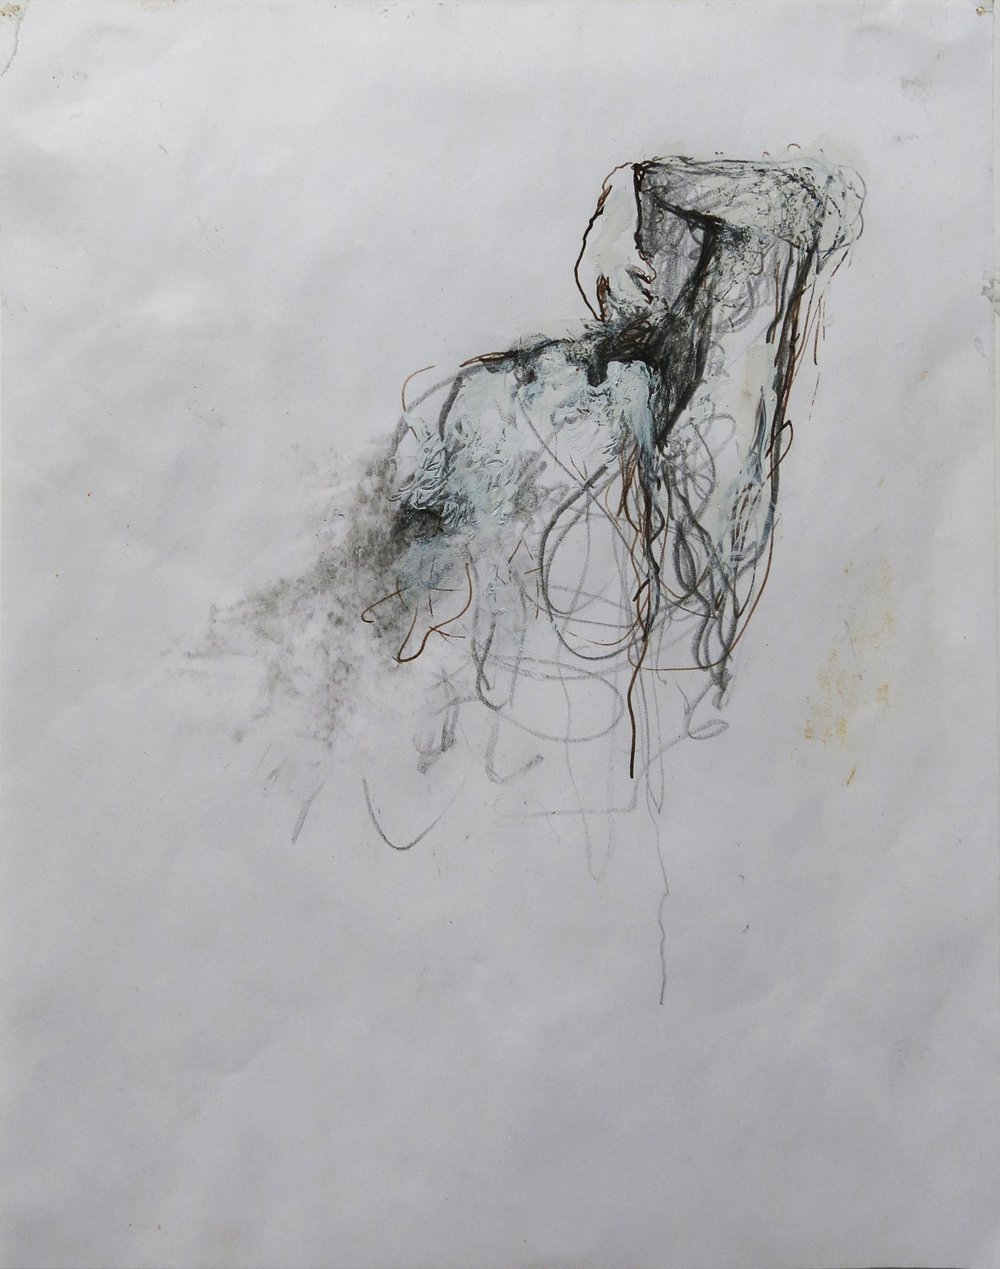 June Leaf,  Untitled (Study for Thirst),  2006, mixed media on paper, 13.625h x 11.125w in. (framed)